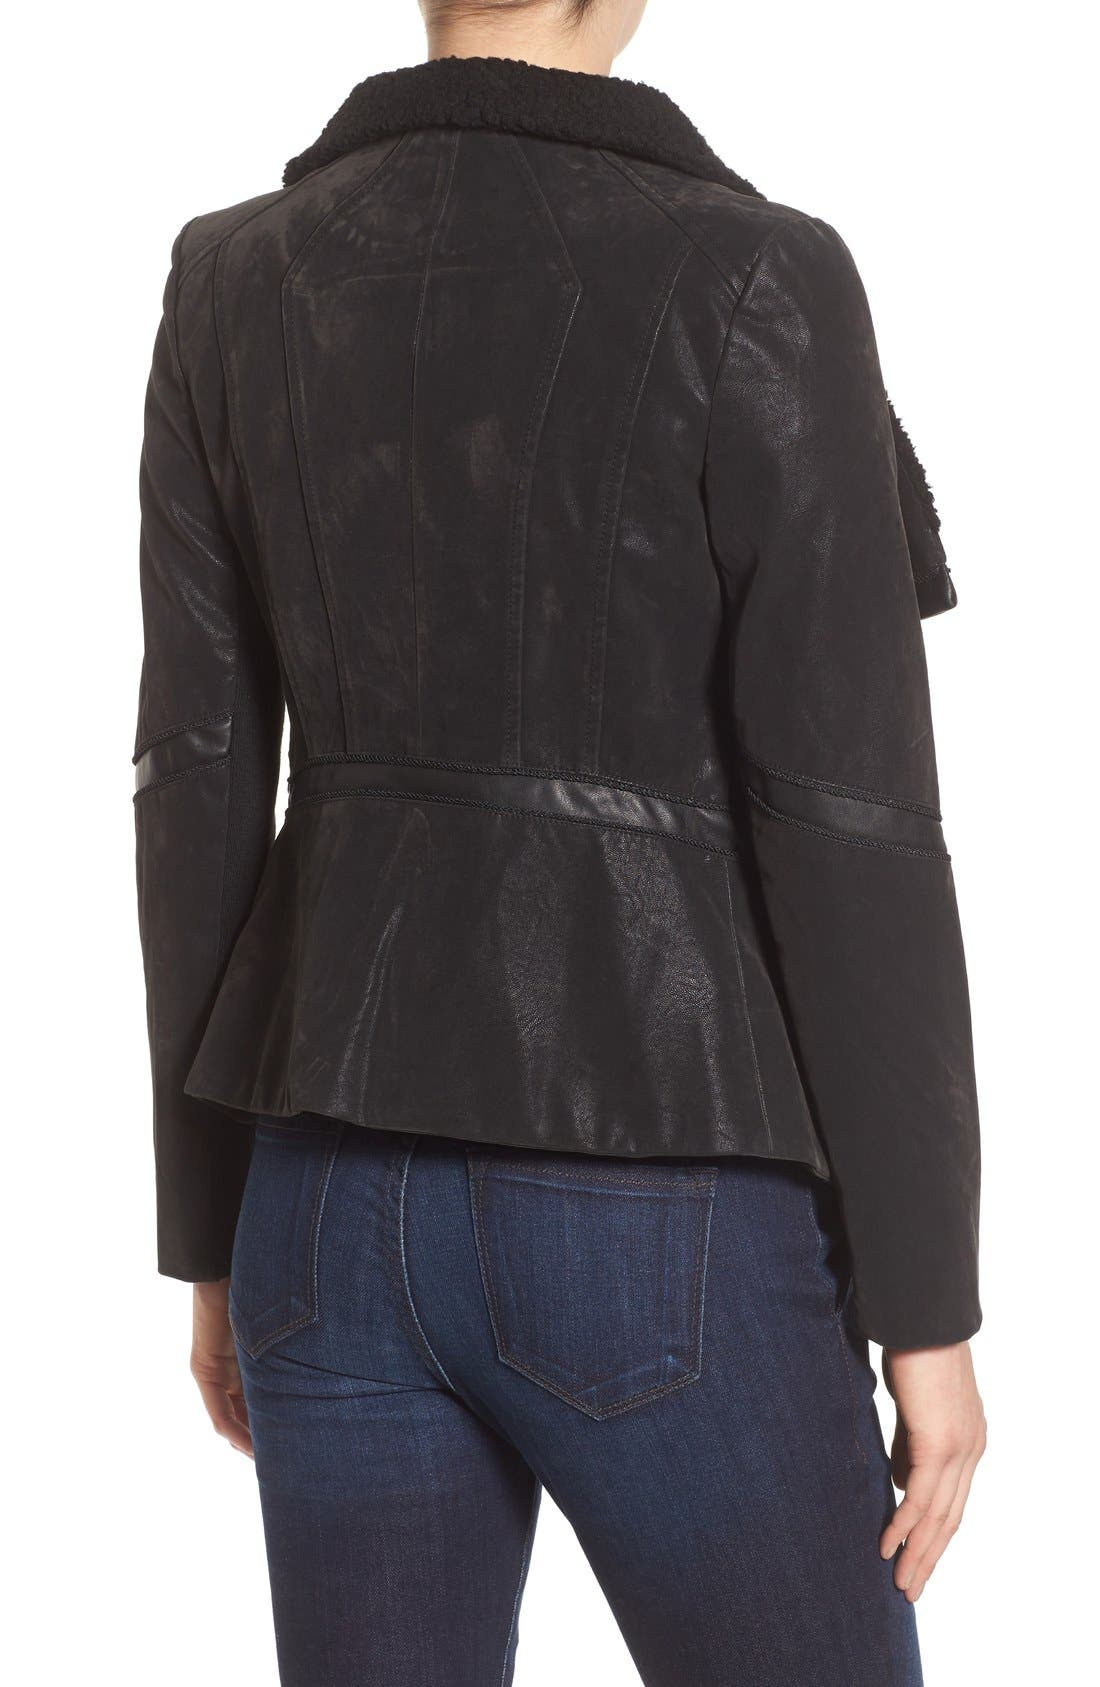 Alternate Image 2  - GUESS Faux Leather Moto Jacket with Faux Fur Trim